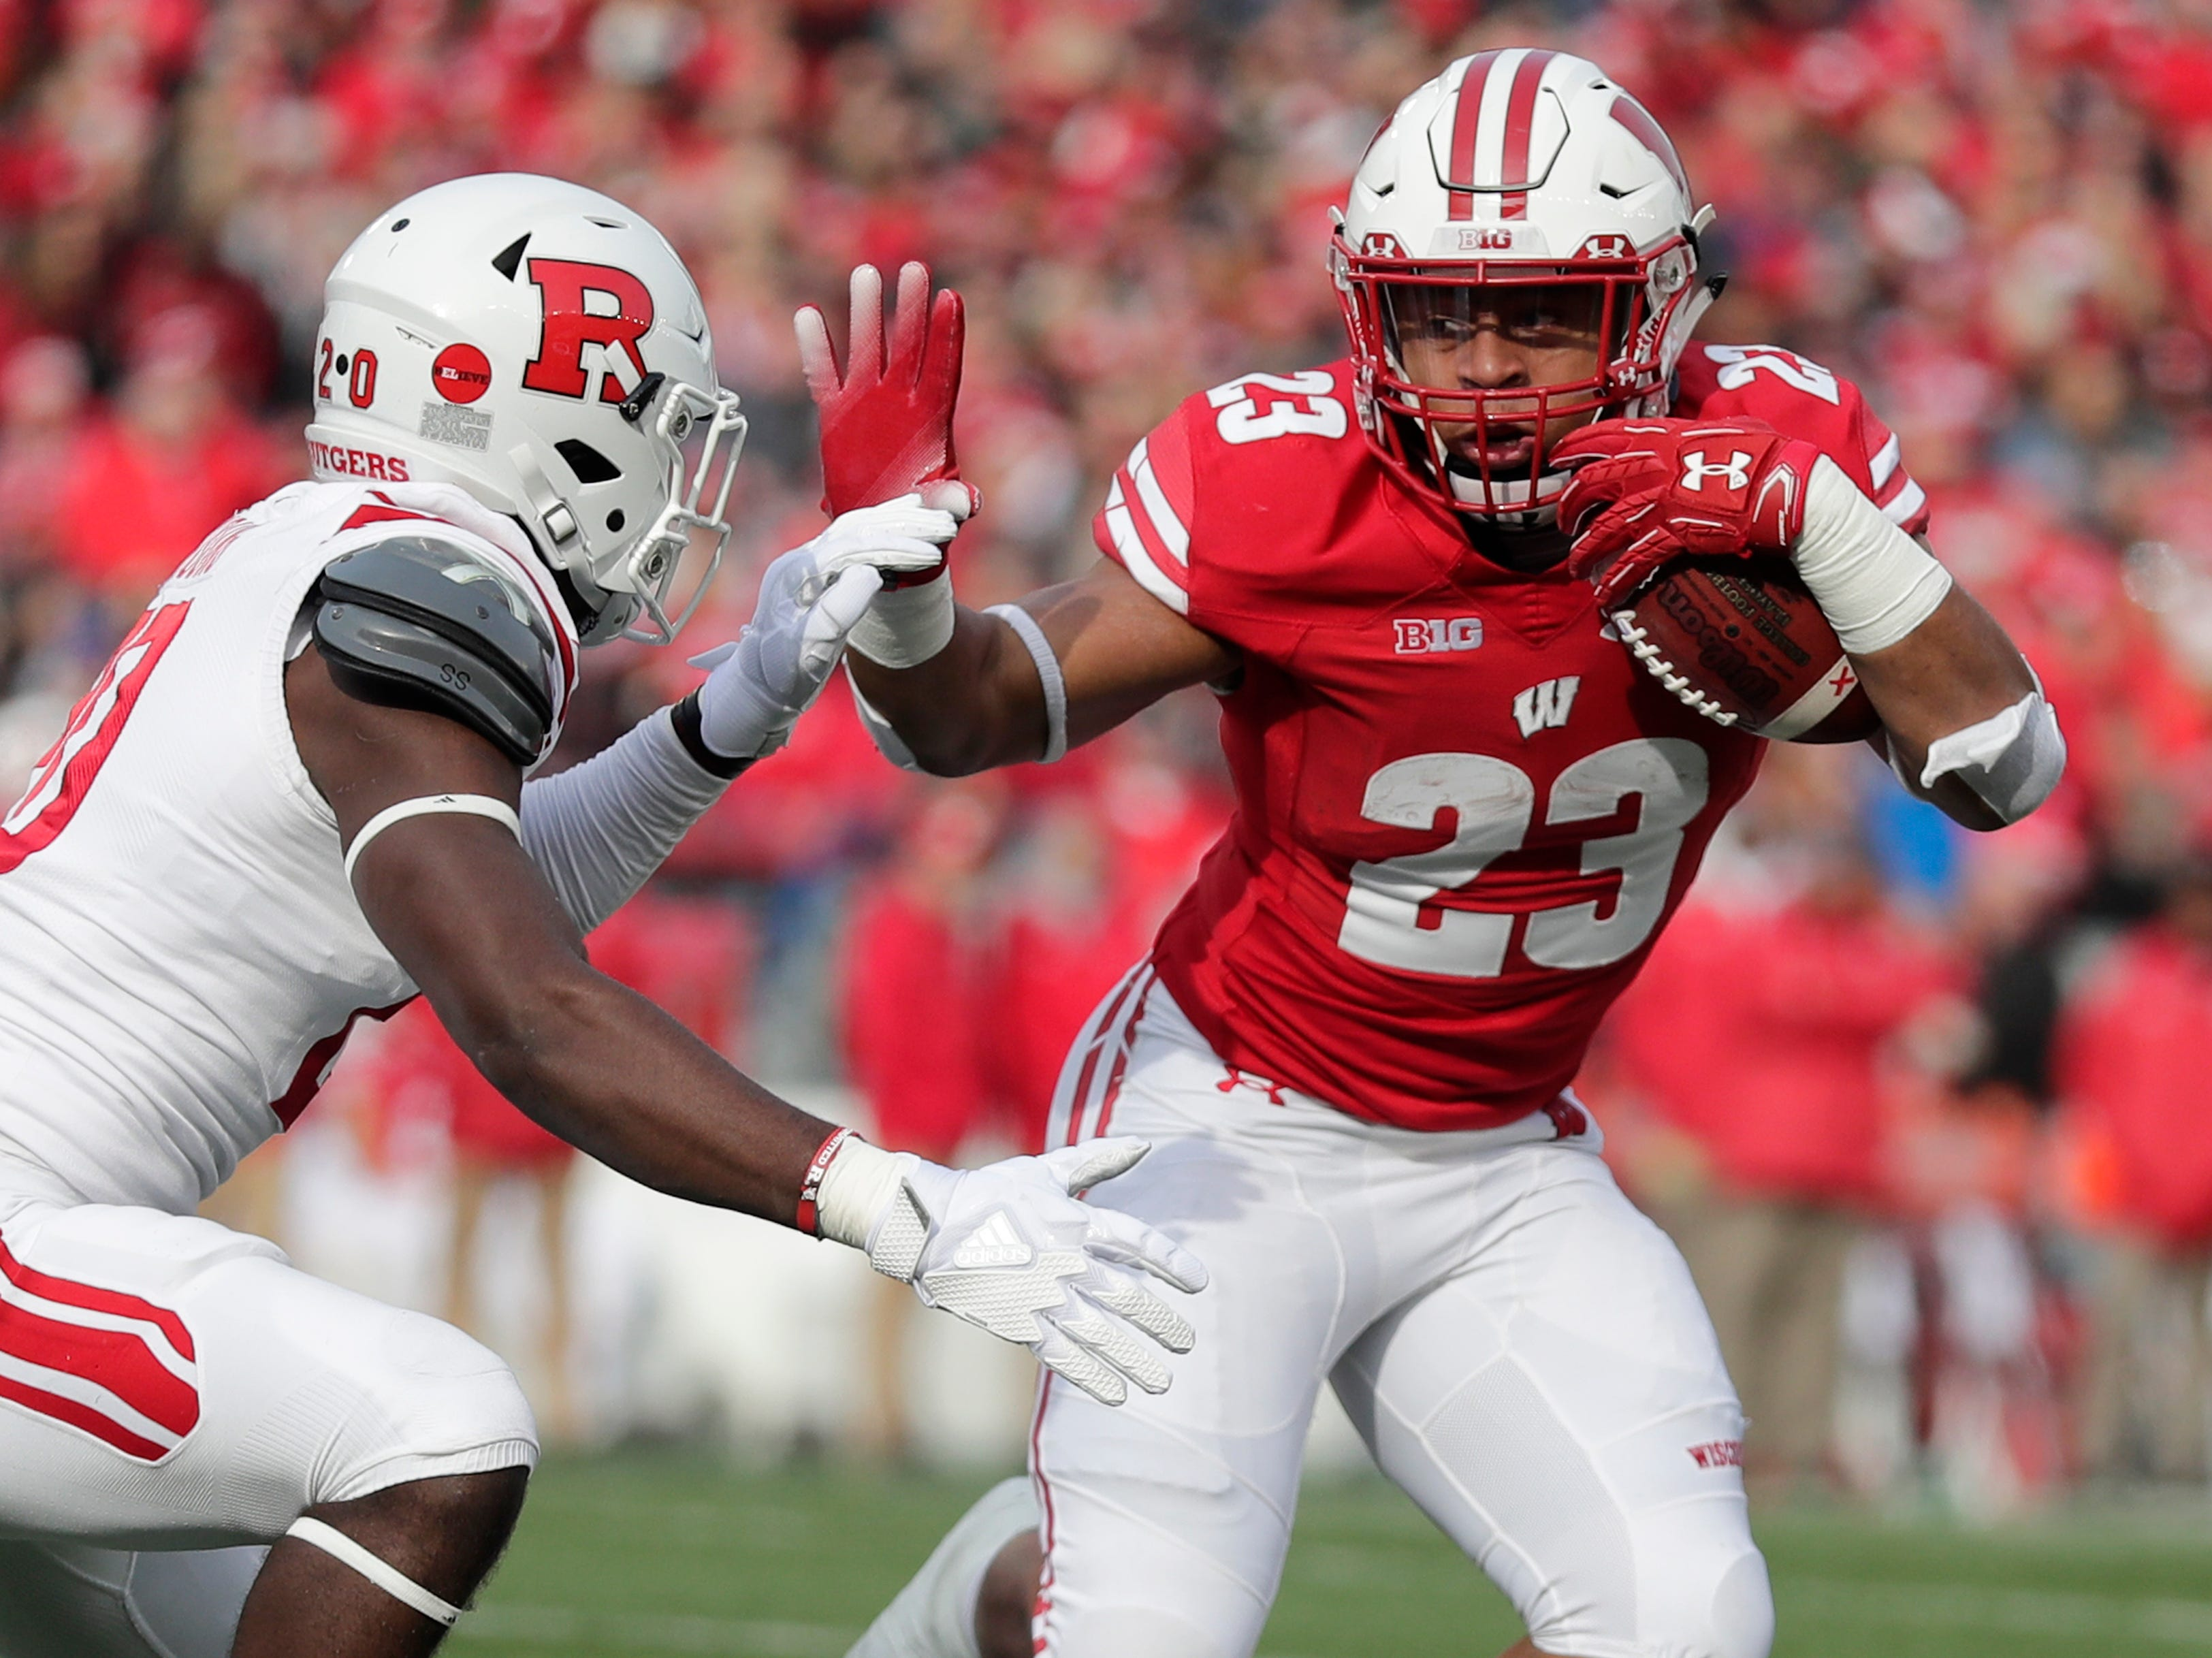 Wisconsin Badgers running back Jonathan Taylor (23) rushes against the Rutgers Scarlet Knights in the first quarter of a Big Ten football game at Camp Randall Stadium on Saturday, November 3, 2018 in Madison, Wis.Adam Wesley/USA TODAY NETWORK-Wisconsin